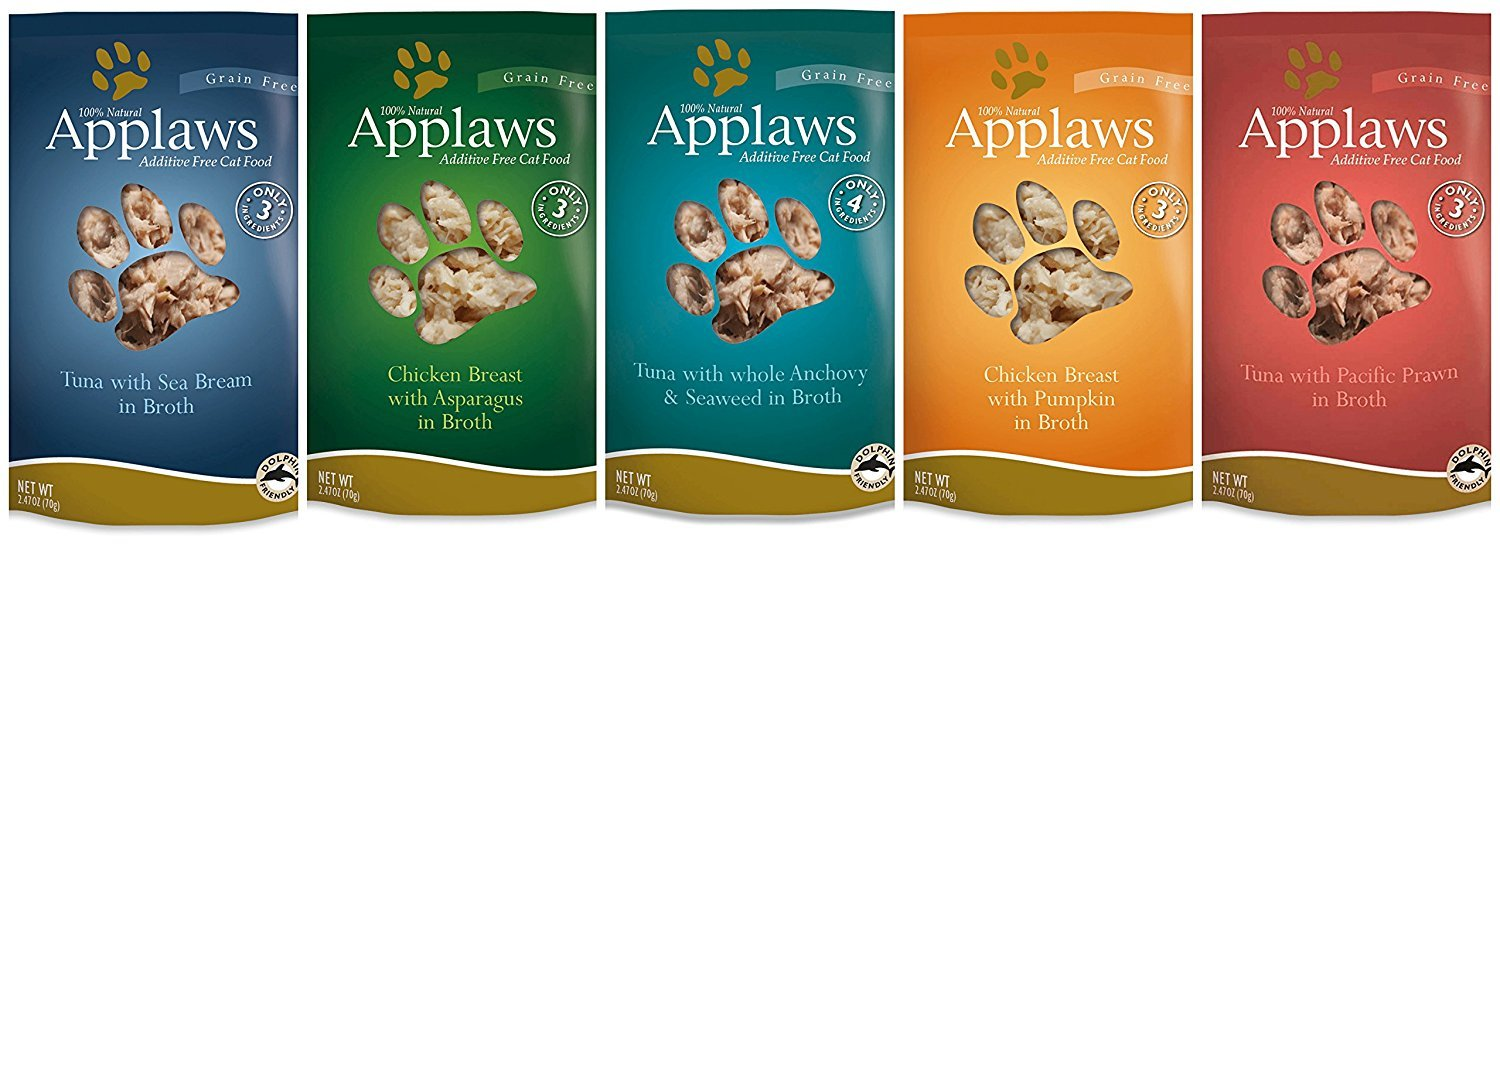 Applaws Grain Free Additive Free Cat Food 5 Flavor Variety Bundle, 2.47 Ounces Each (10 Pouches Total) by Applaws Wet Cat Food